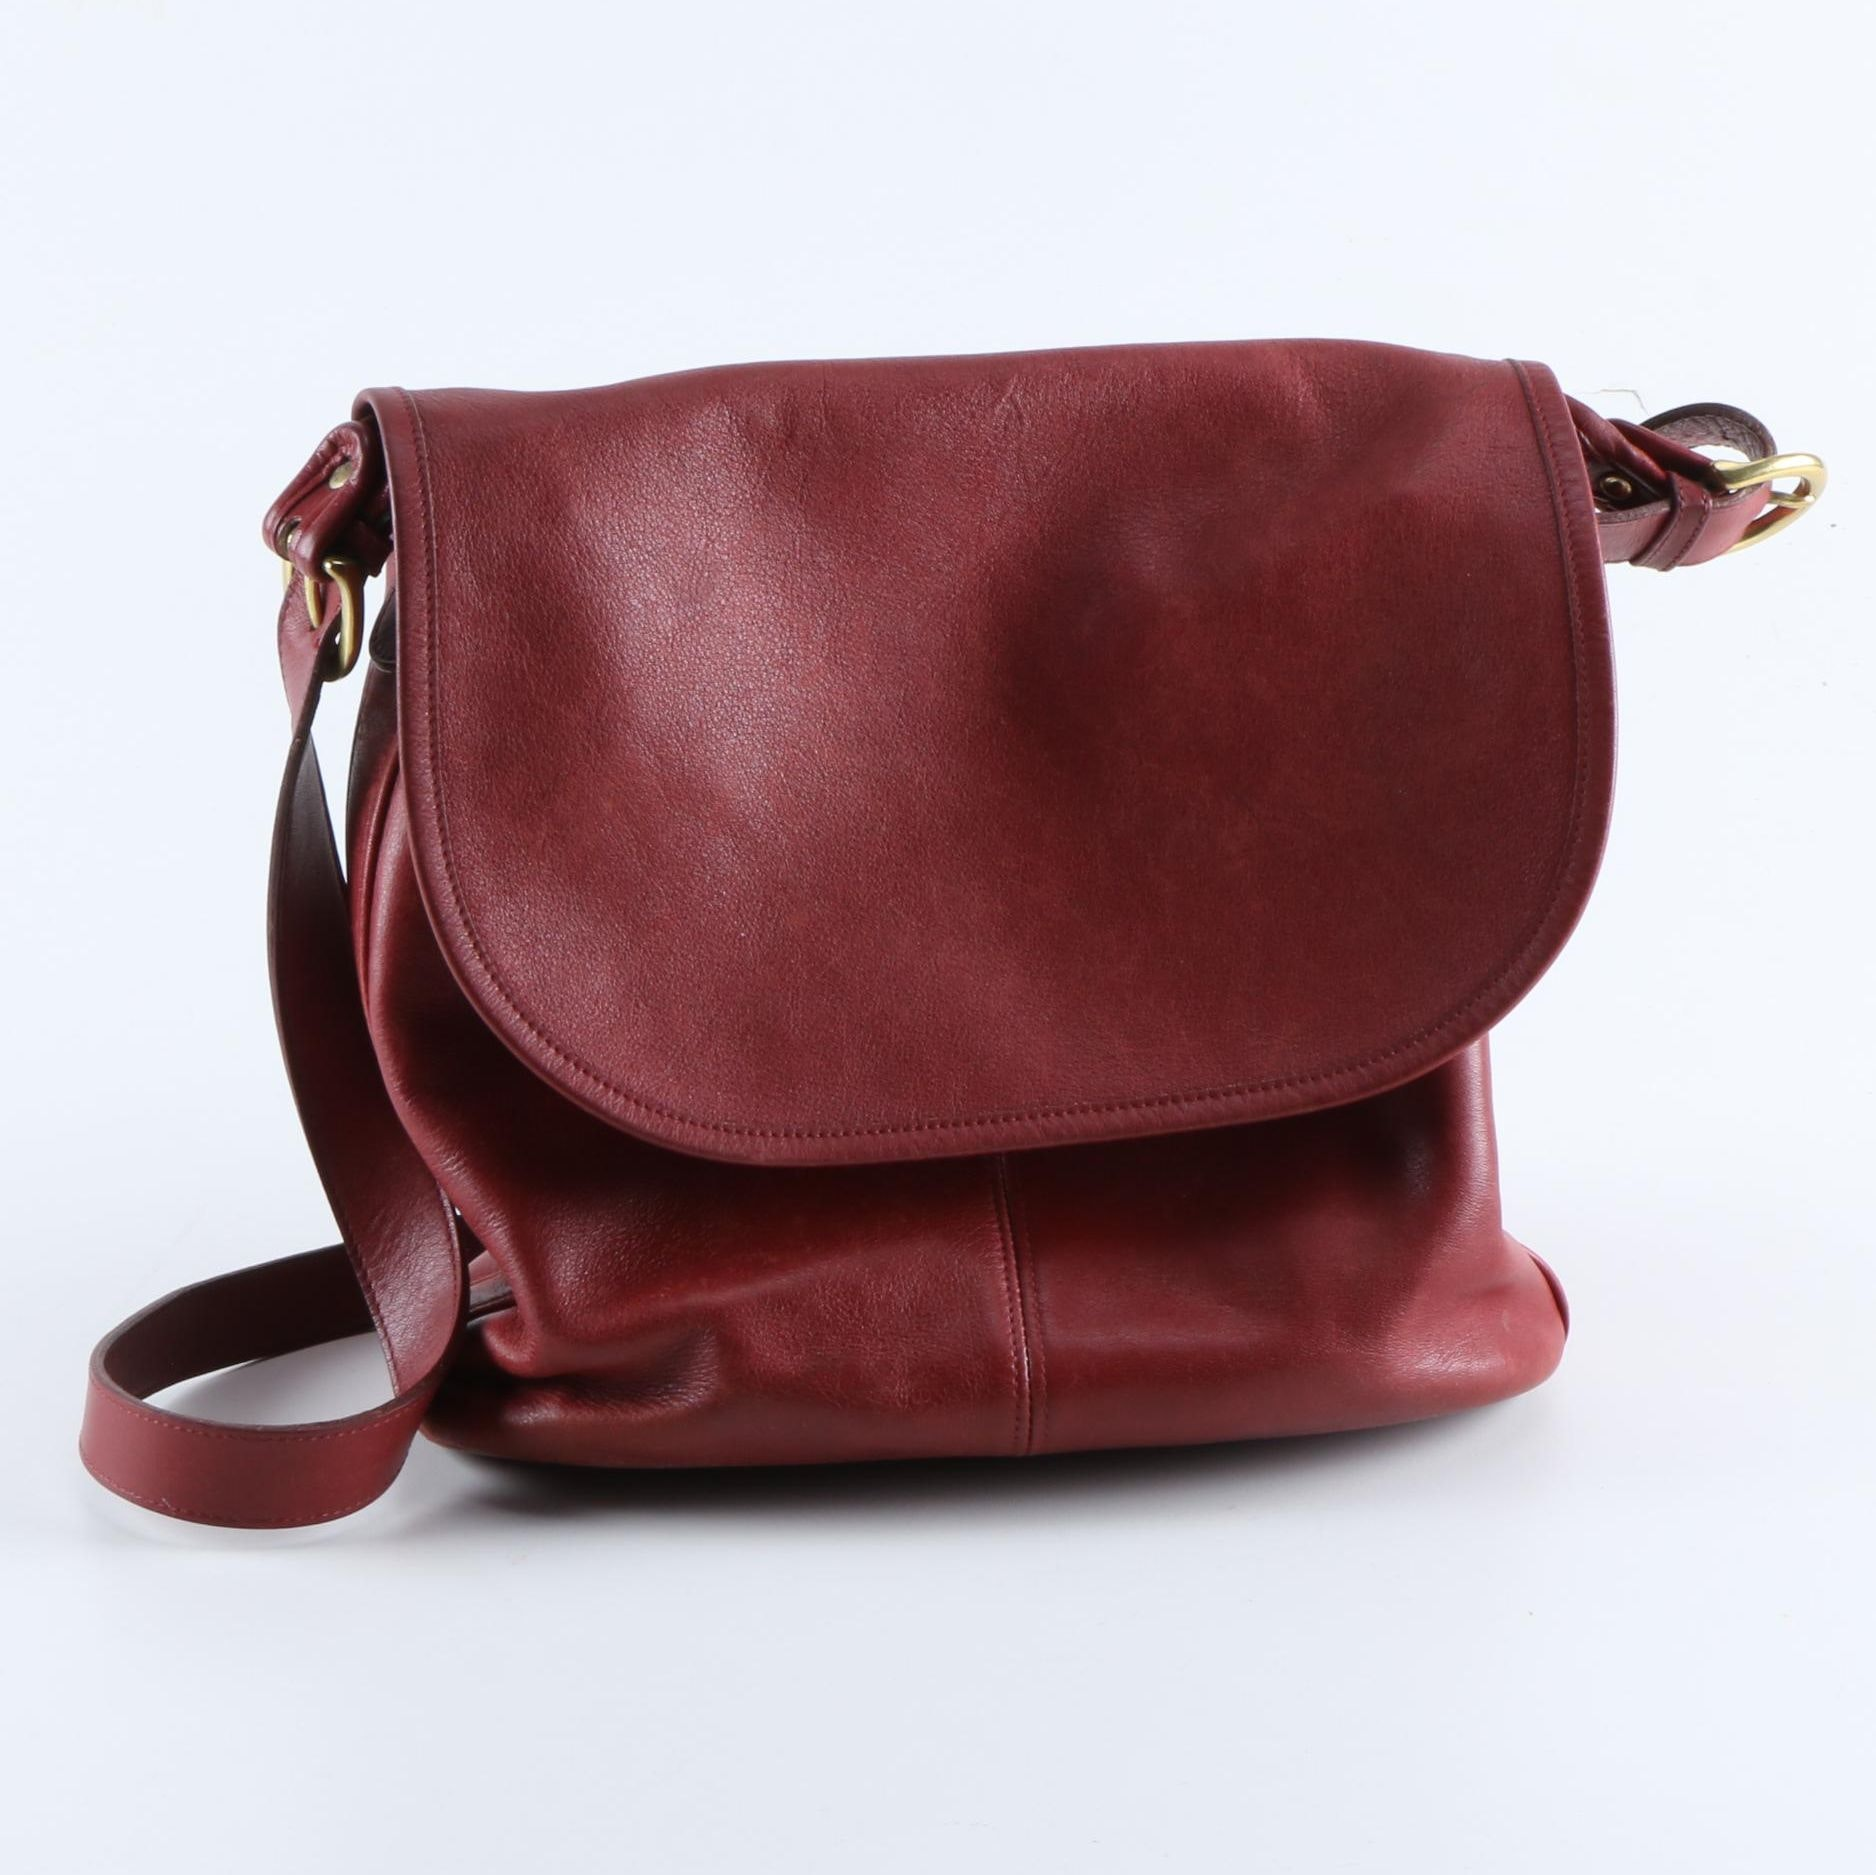 Coach Red Leather Whitney Bag